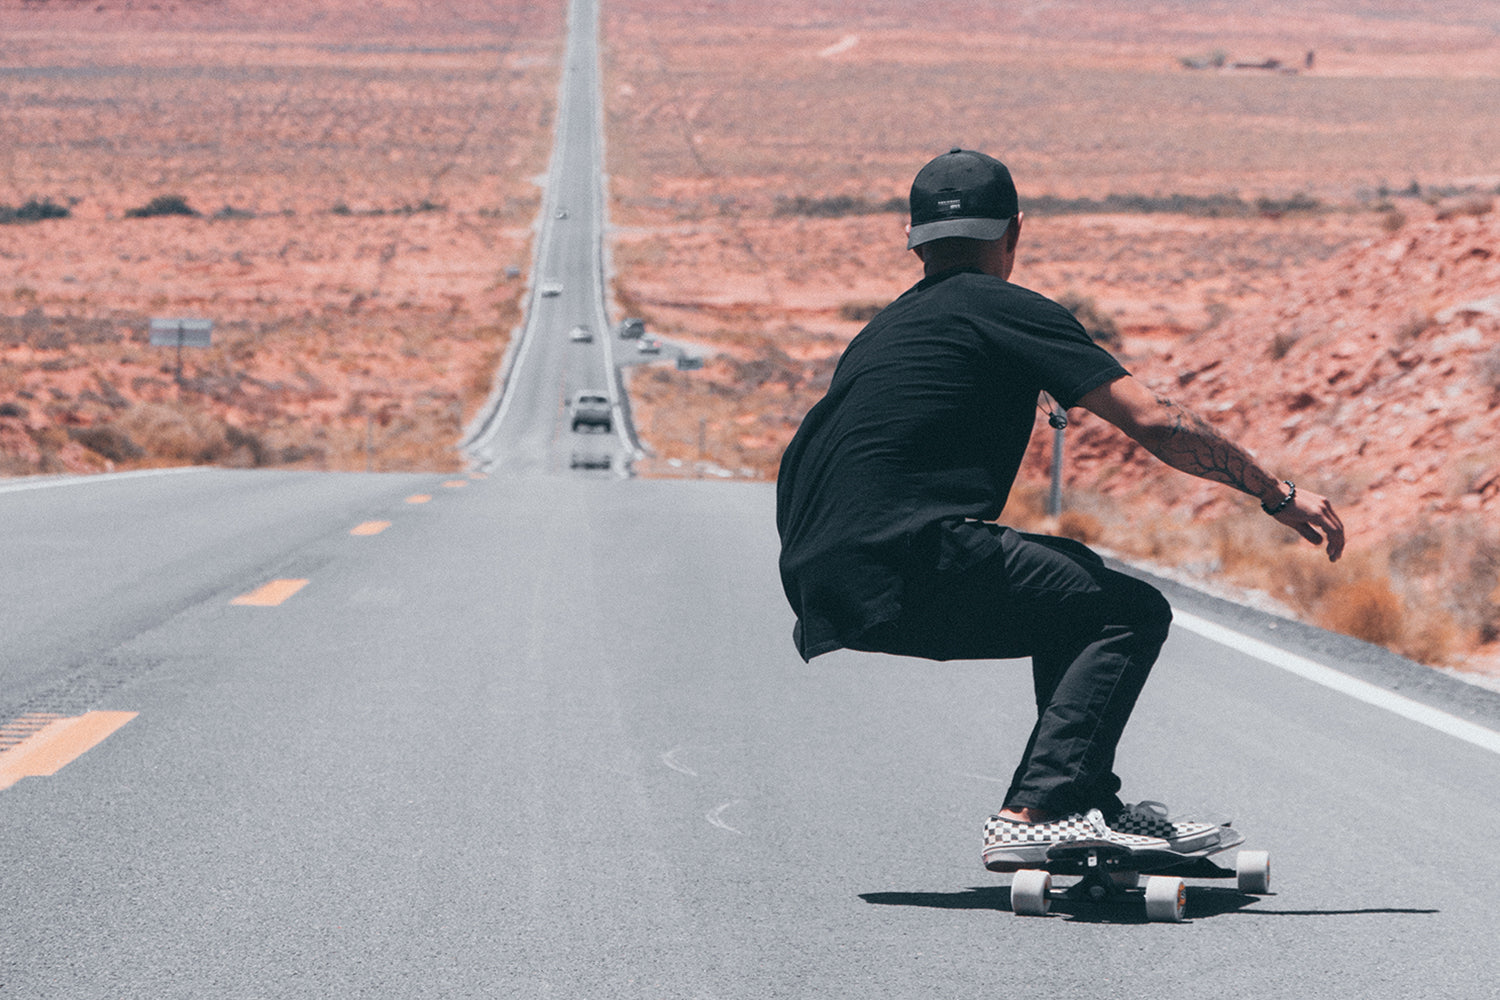 Monument Valley Navajo Tribal Park Longboarding